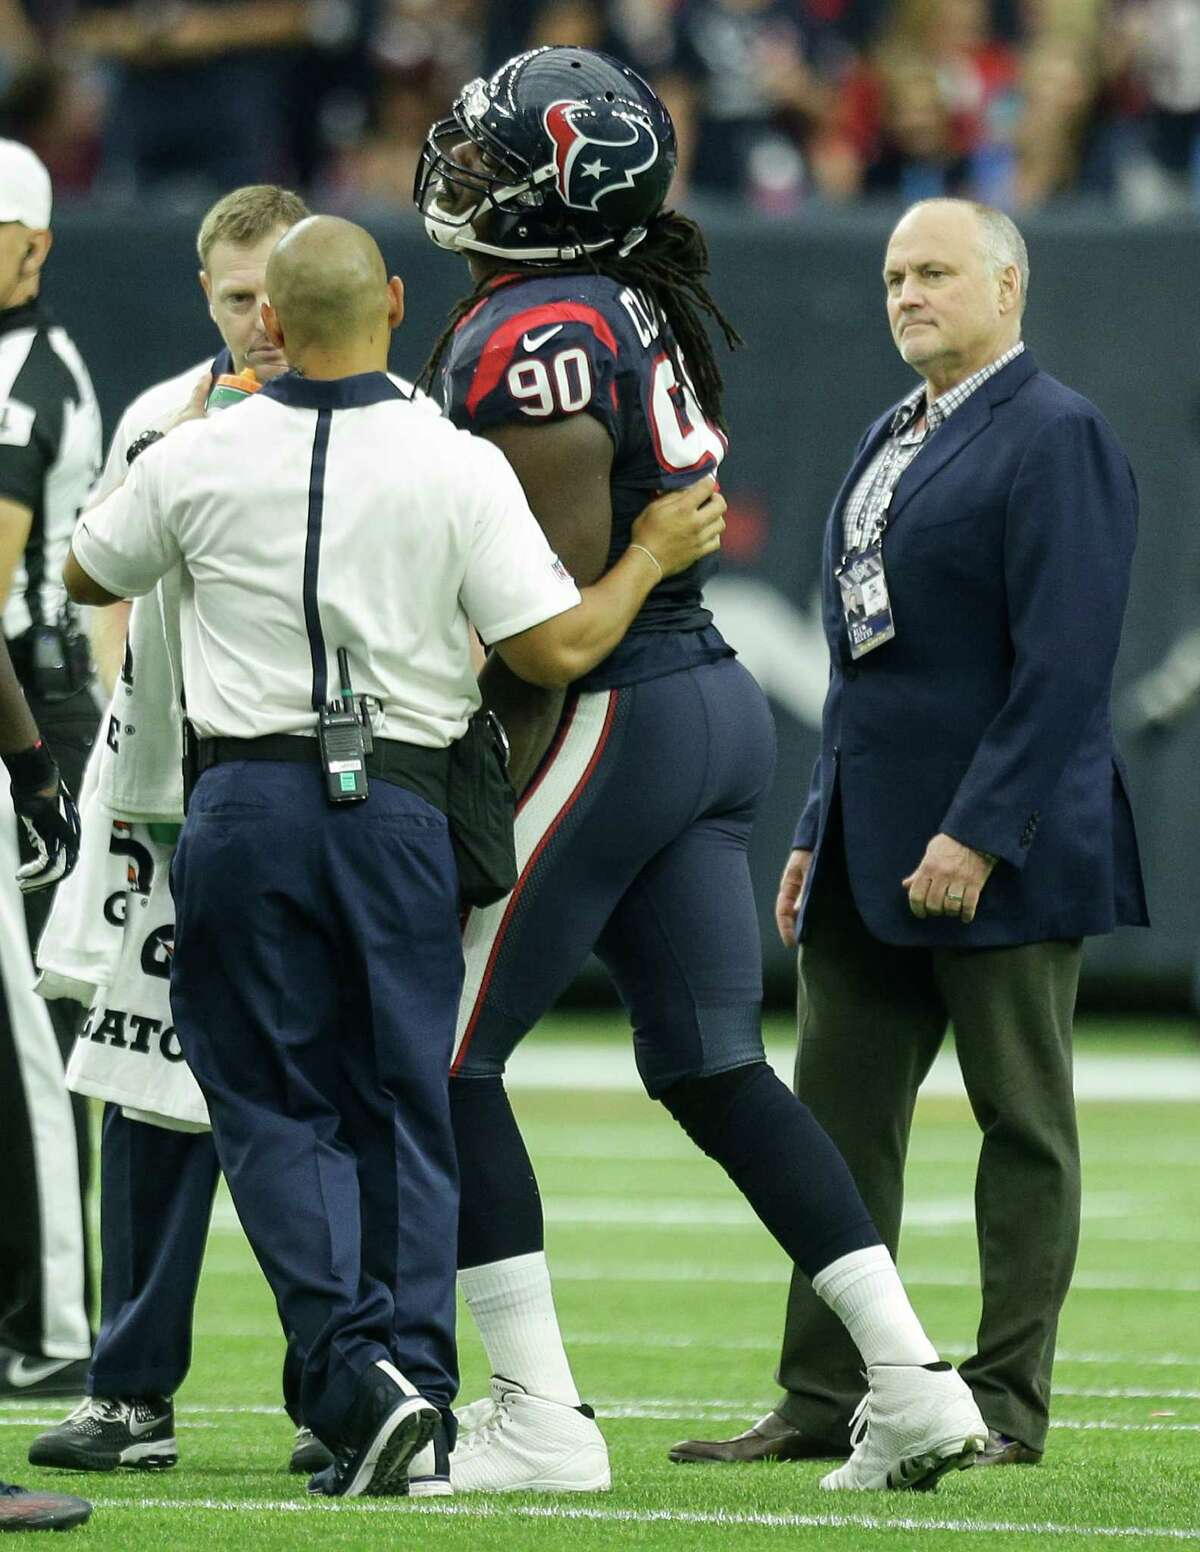 3.The injury issues with outside linebacker Jadeveon Clowney In a perfect world, Clowney will stay healthy for 16 games and become the monster pass rusher the Texans thought he would be when they drafted him first overall in 2014. He said he experienced no problem with his knee that underwent microfracture surgery, but he missed three games and parts of others with different injuries. Clowney has to play hurt and stay on the field. He showed last season he can play well against the run. He flashed as a pass rusher. If he can stay healthy, consistency may be an issue. Imagine the pass rush if Clowney stays on the field with J.J. Watt and Whitney Mercilus.